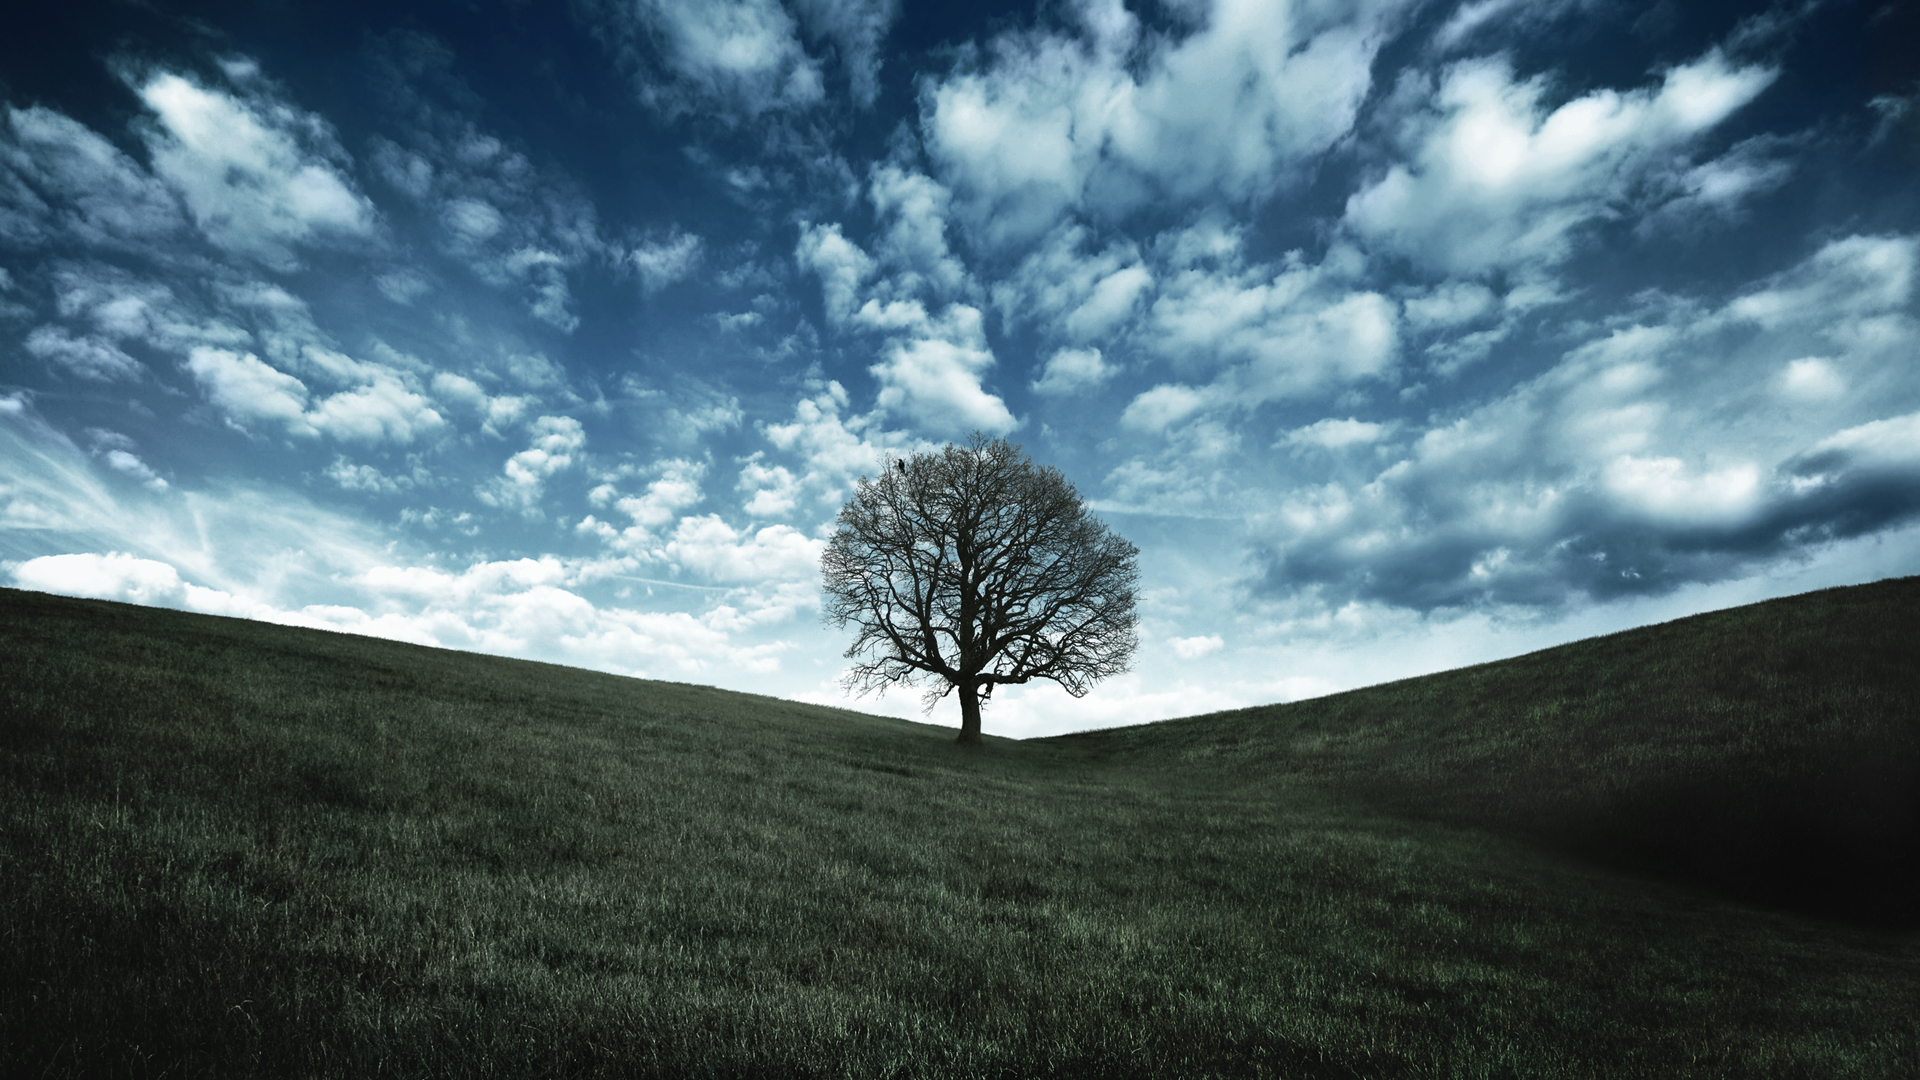 40 hd tree wallpapers backgrounds for free download - Mainframe wallpaper ...